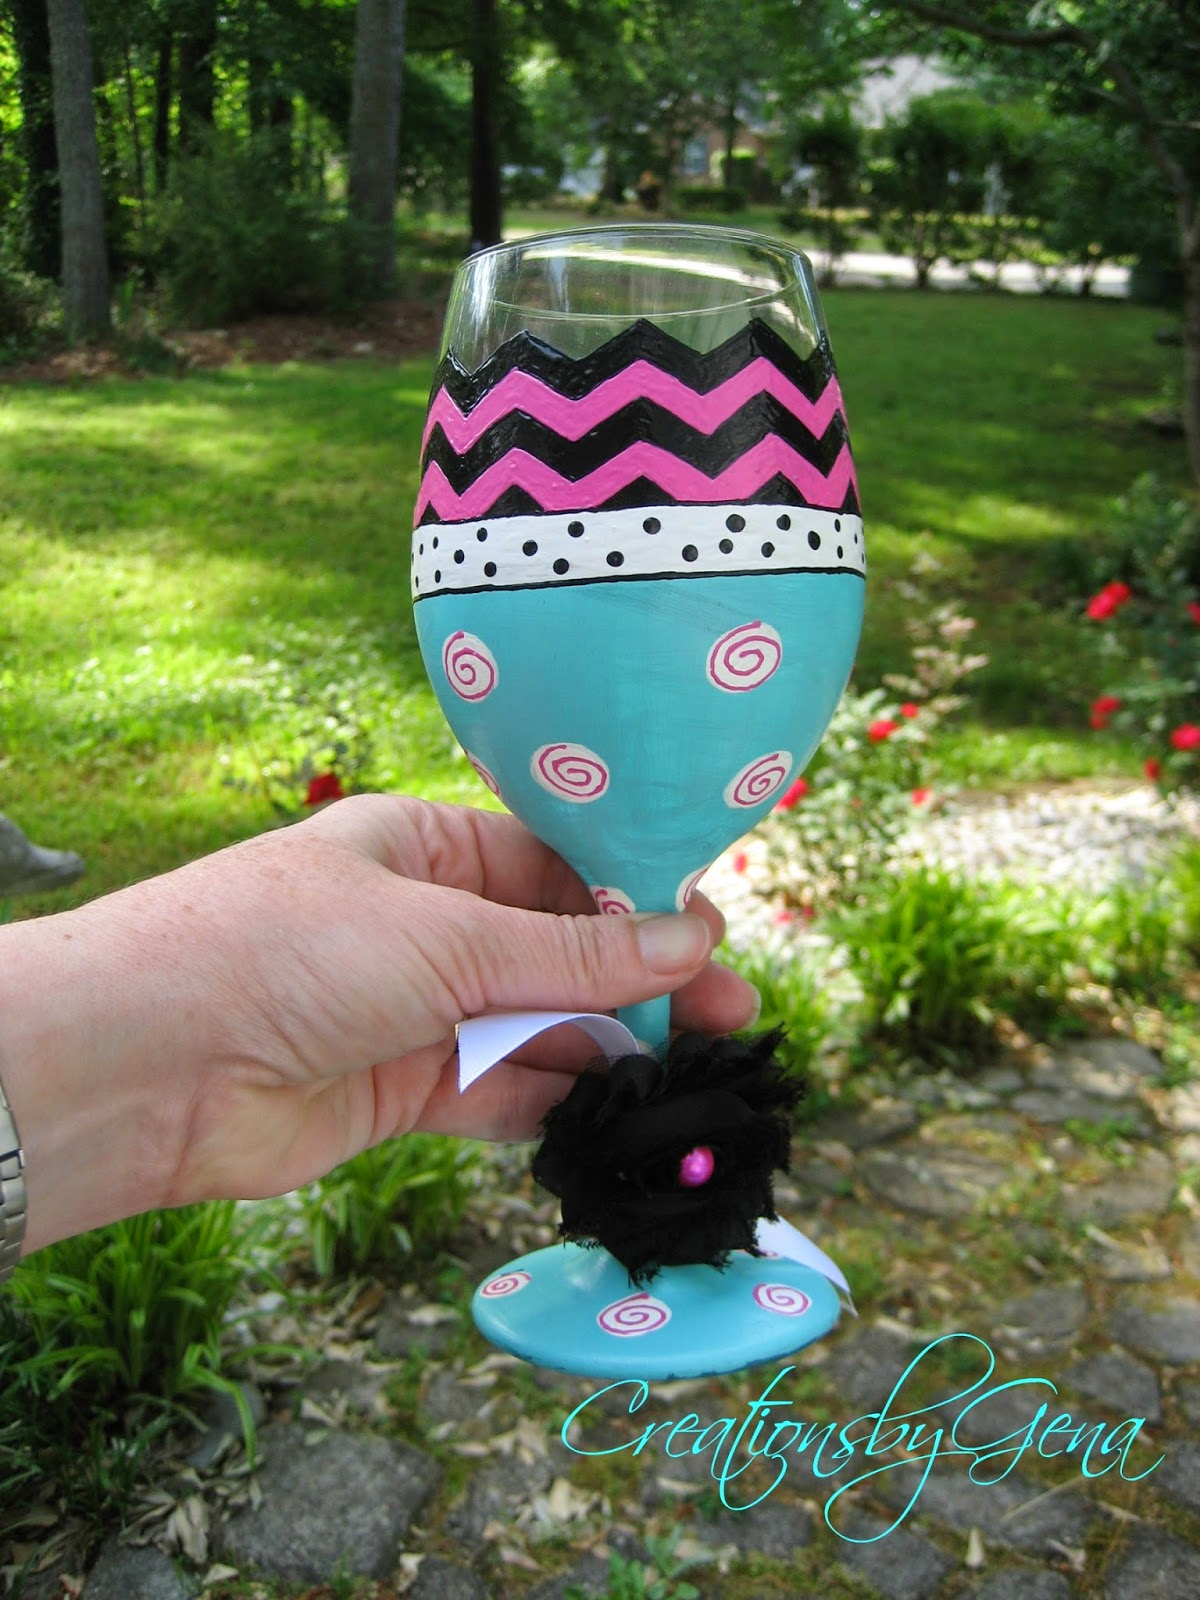 https://www.etsy.com/listing/188935877/hand-painted-whimsical-wine-glass-pink?ref=related-0